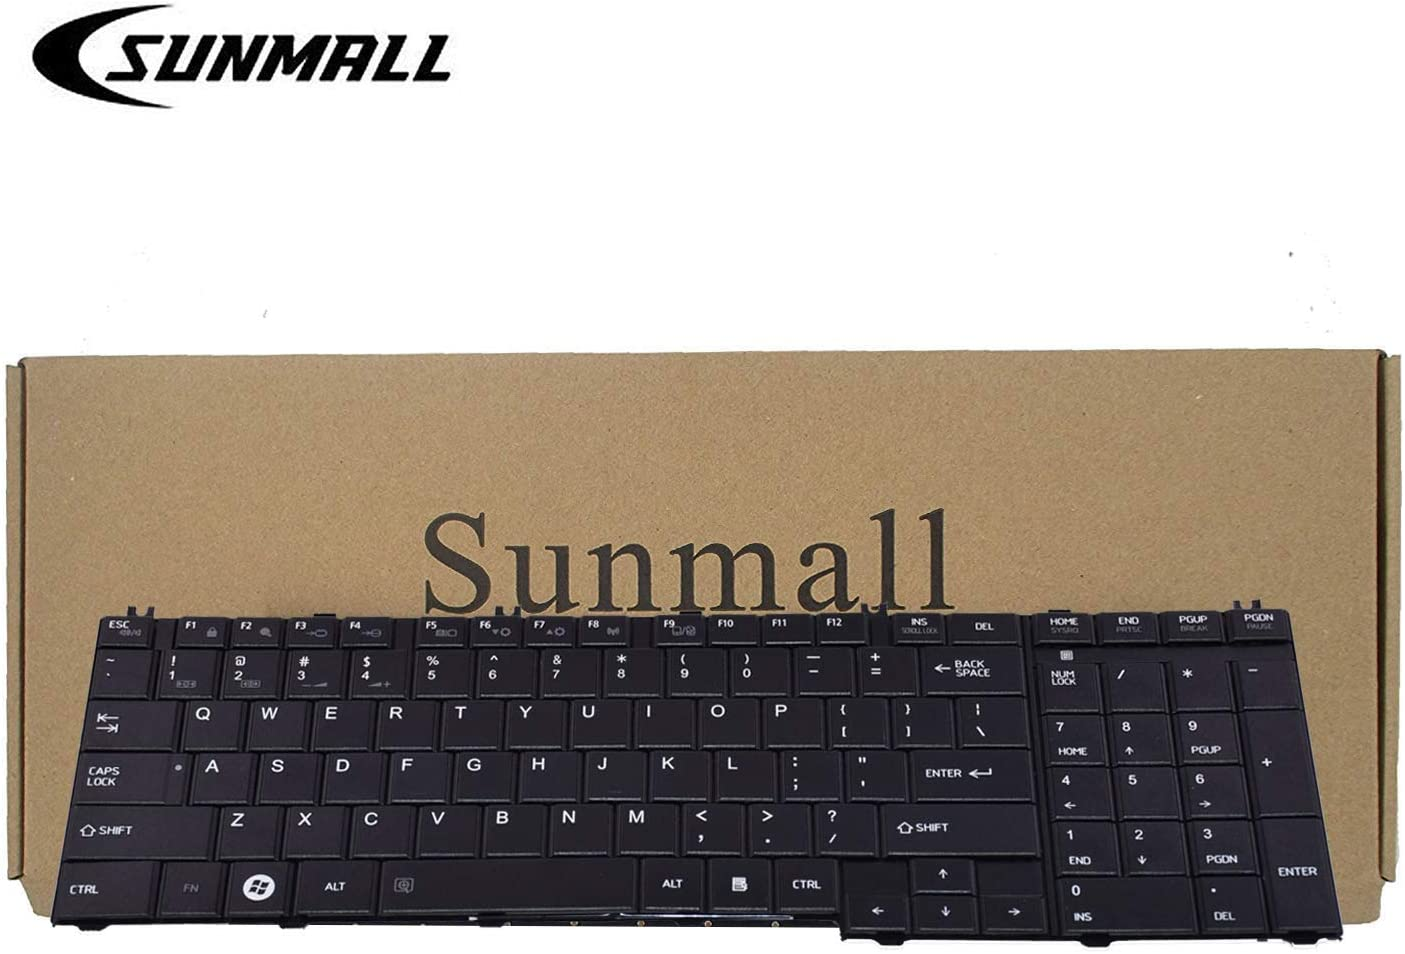 C655 Keyboard Compatible with Toshiba Satellite, SUNMALL Keyboard Replacement Compatible with Toshiba Satellite C655 L655 C755 L755 Series Laptop